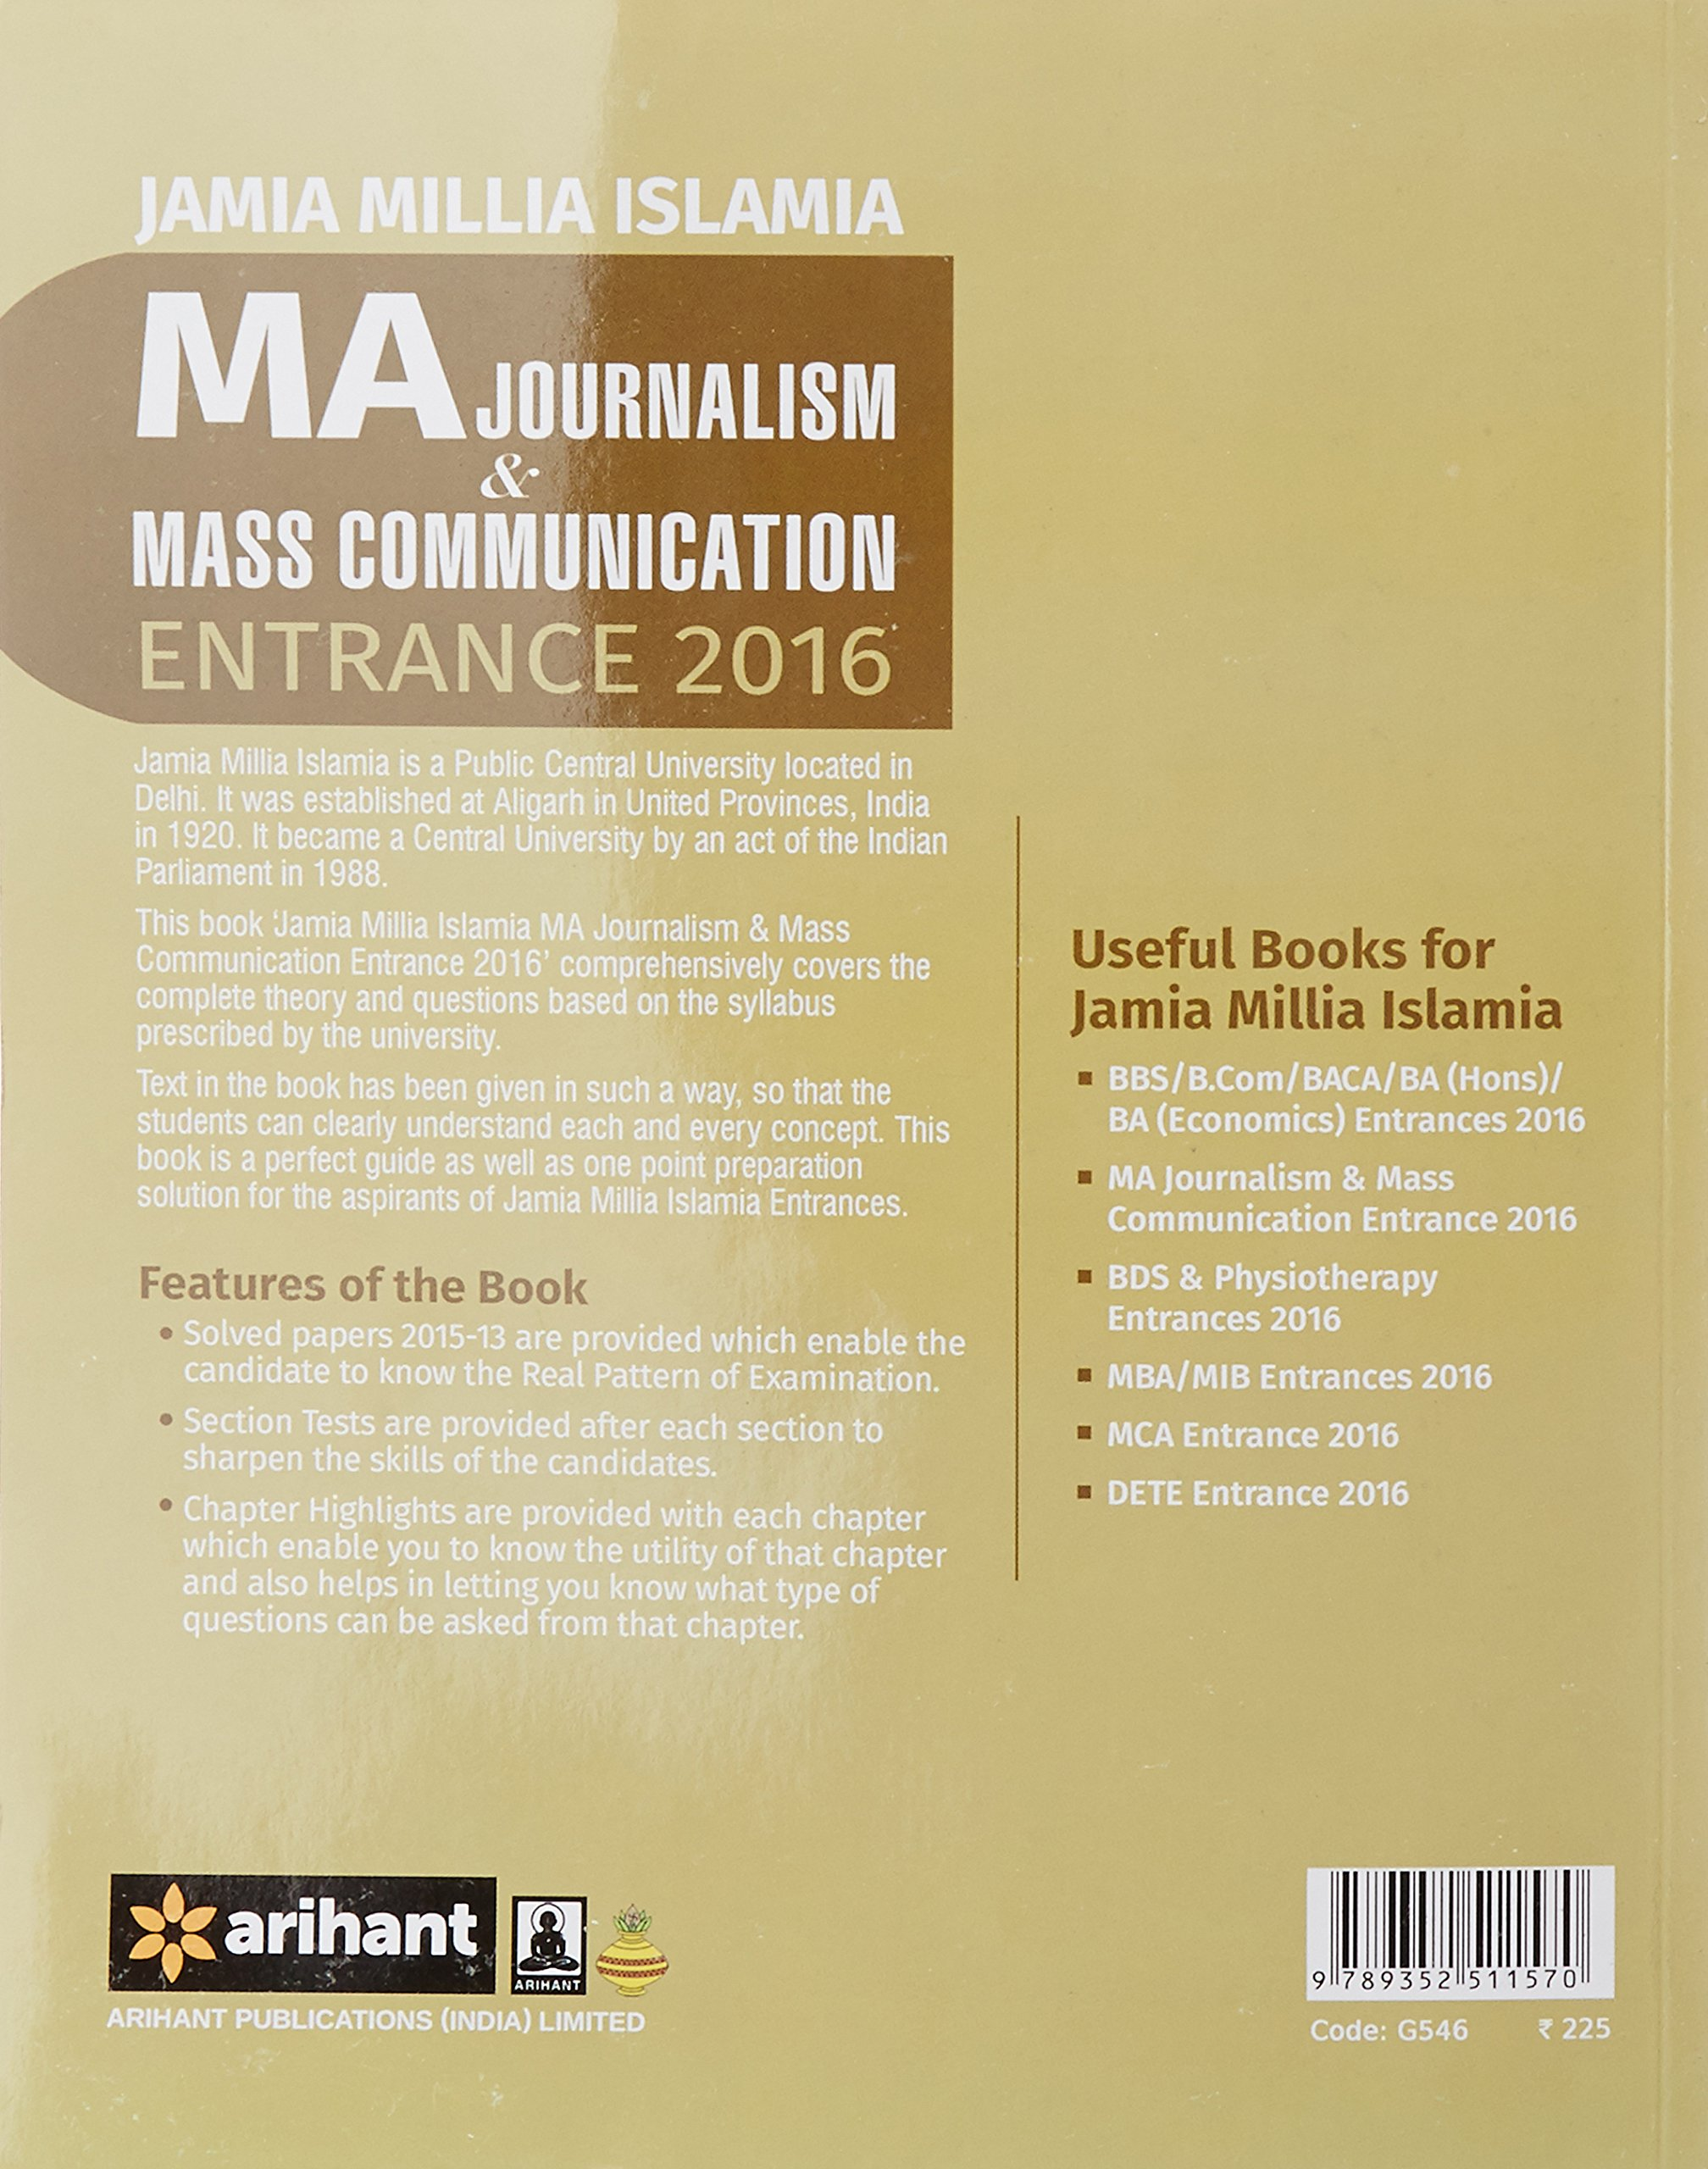 Buy the perfect study resource for jamia millia islamia ma buy the perfect study resource for jamia millia islamia ma journalism mass communication entrance 2017 book online at low prices in india the fandeluxe Images